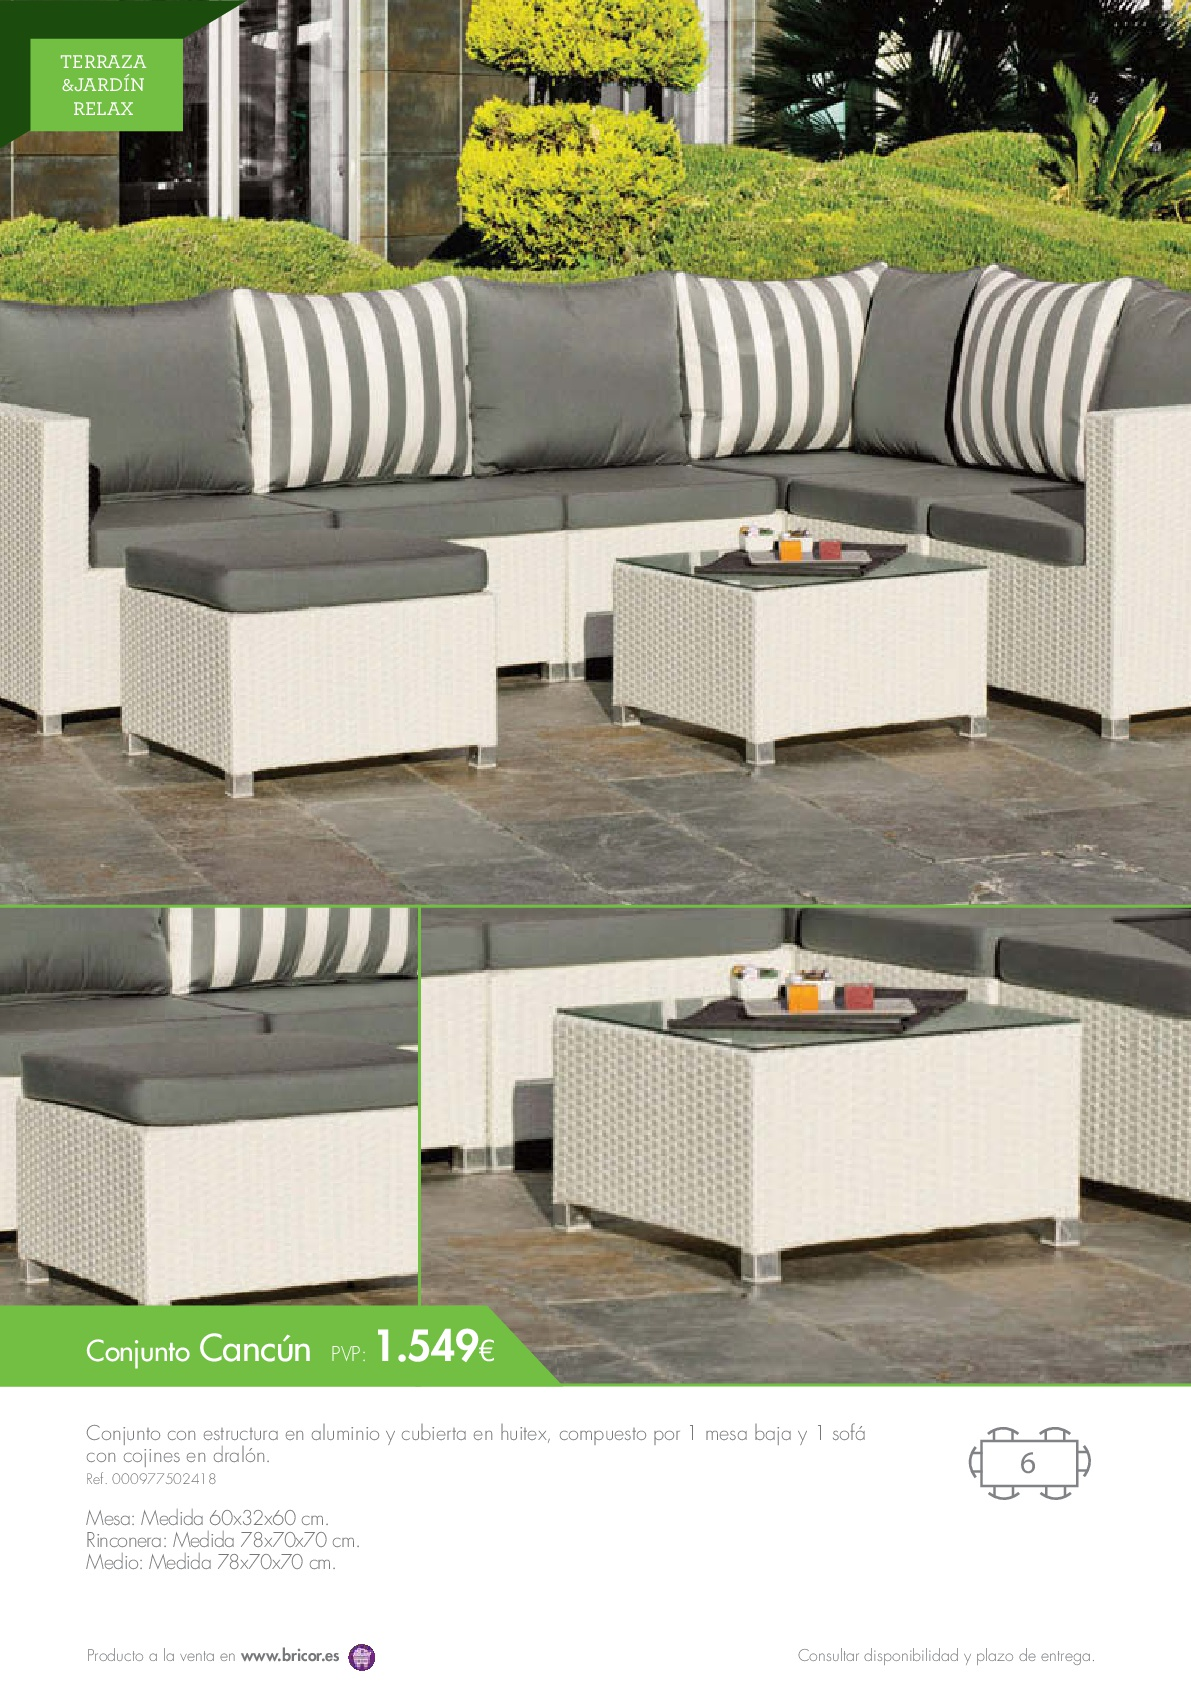 Bricor muebles jardin 201666 revista muebles for Revista jardin 2016